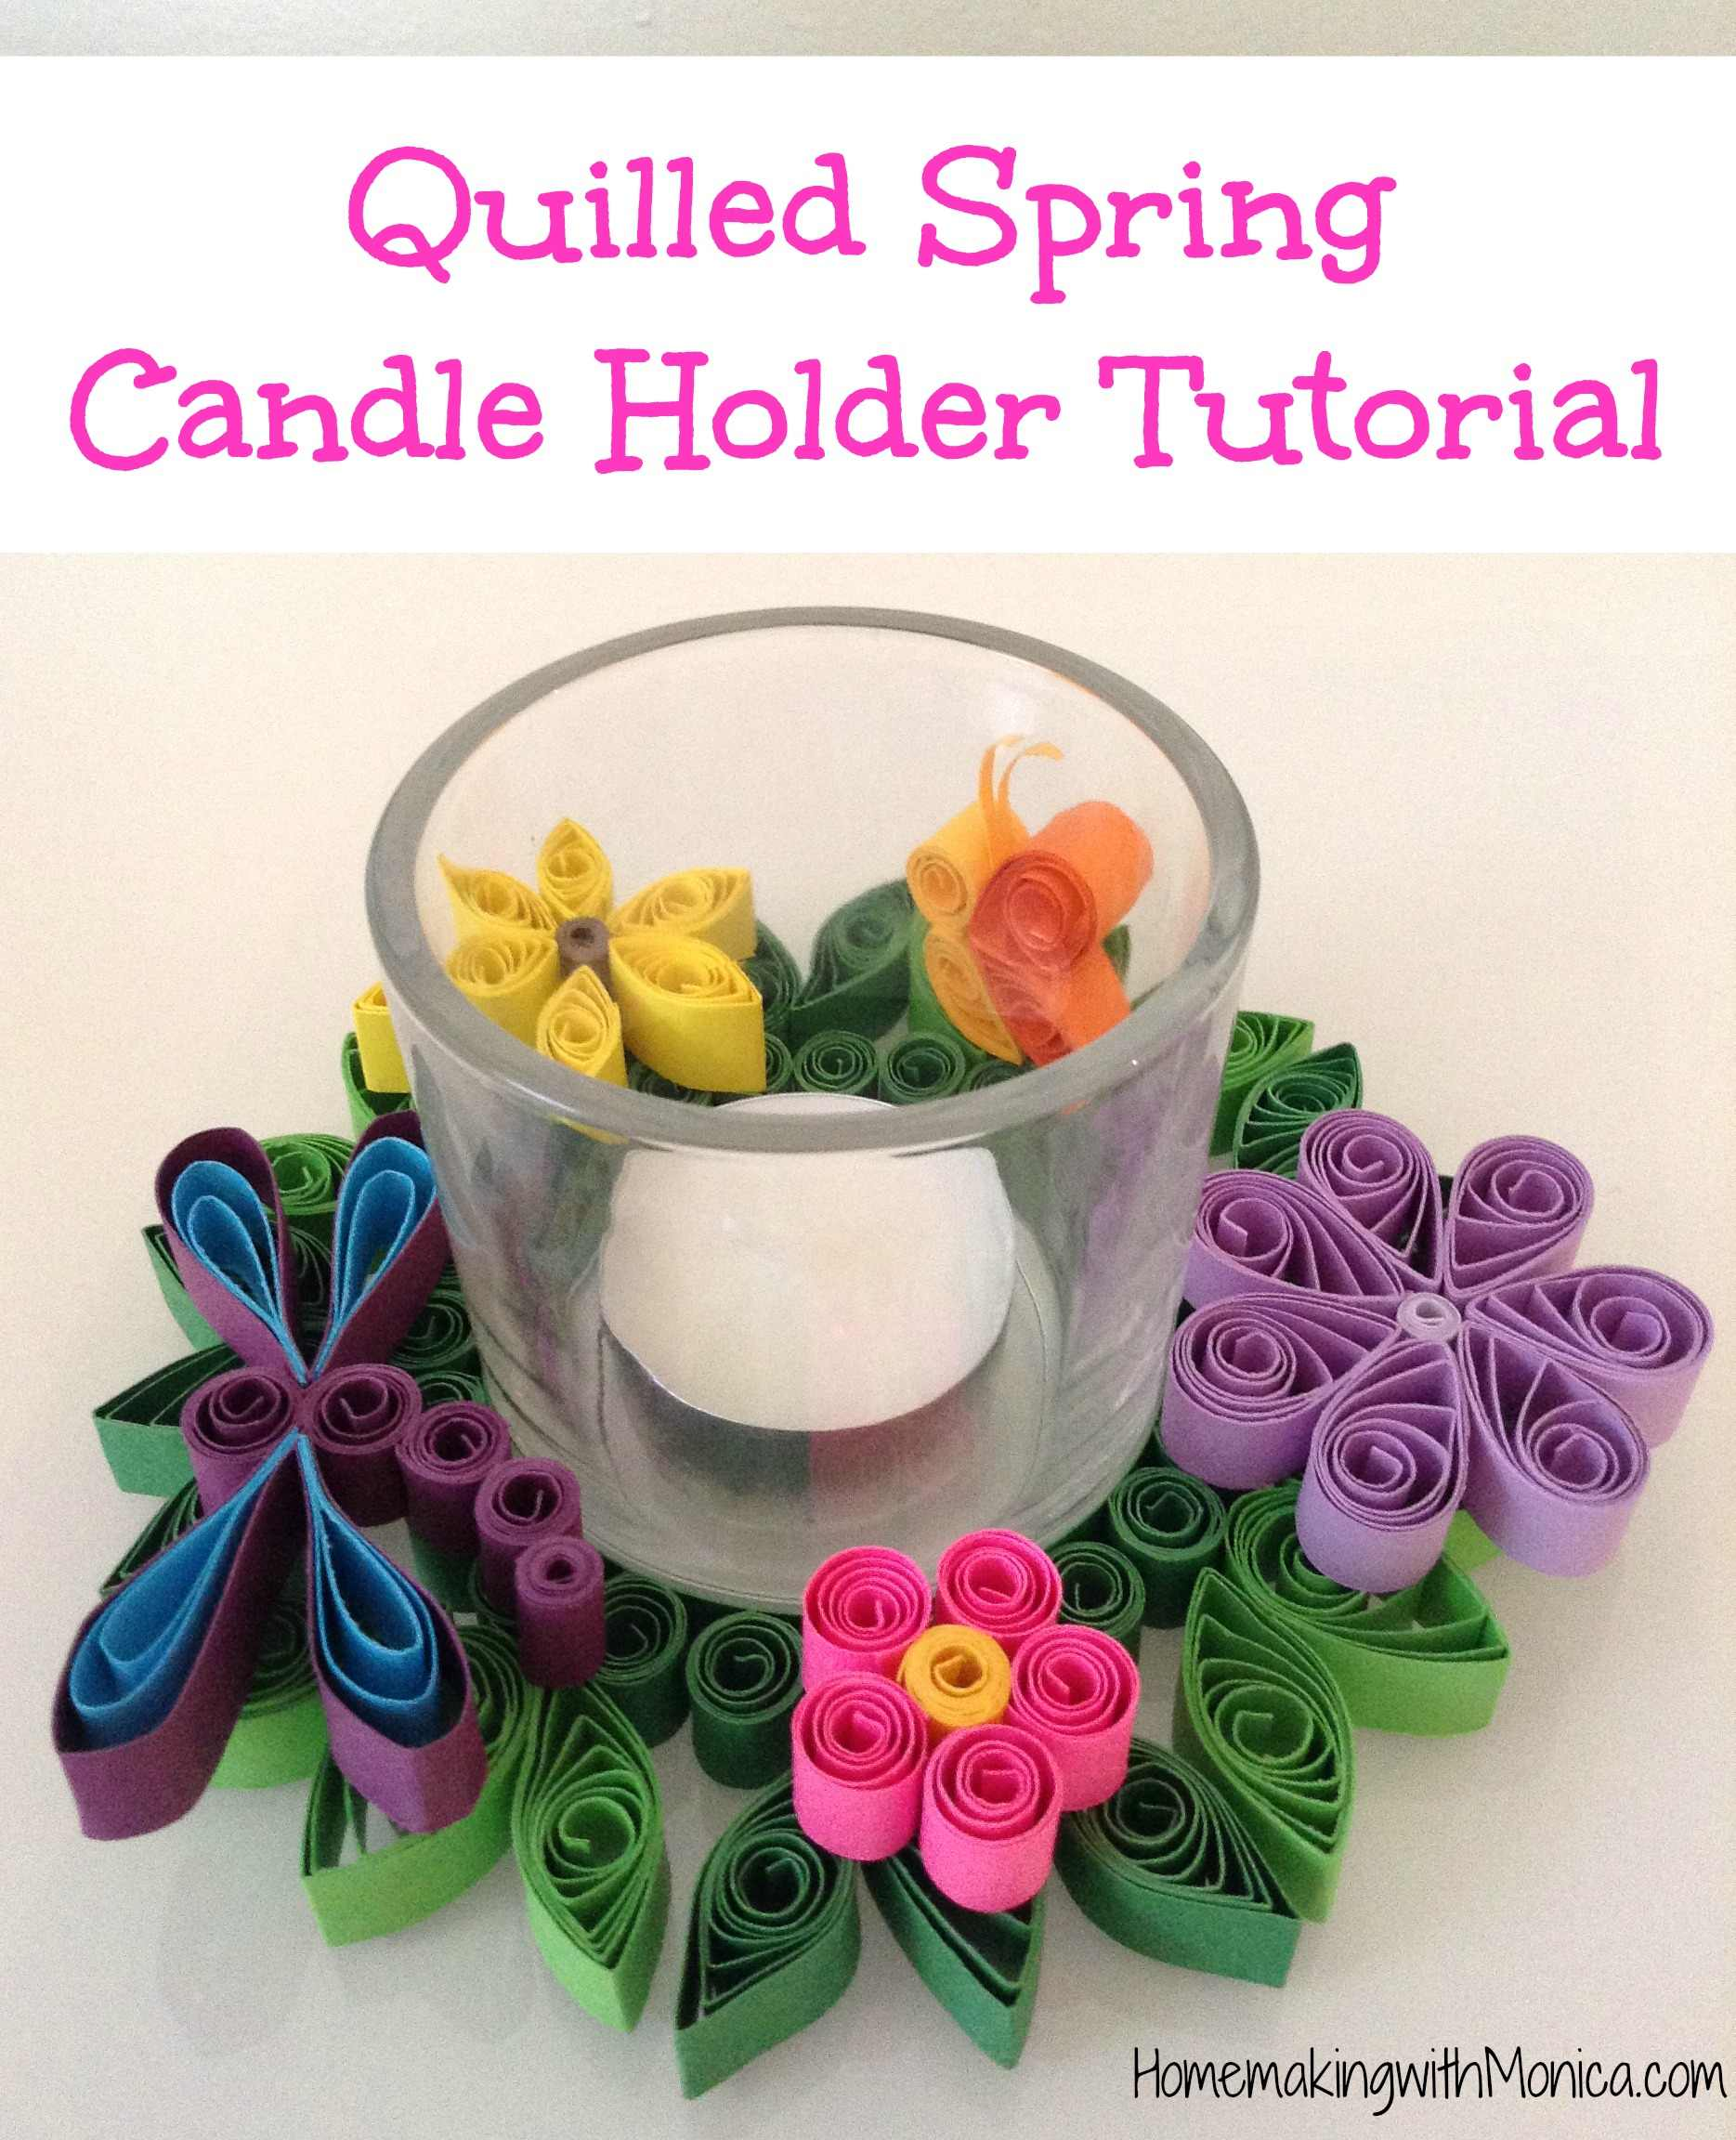 Quilled Spring Candle Holder Tutorial